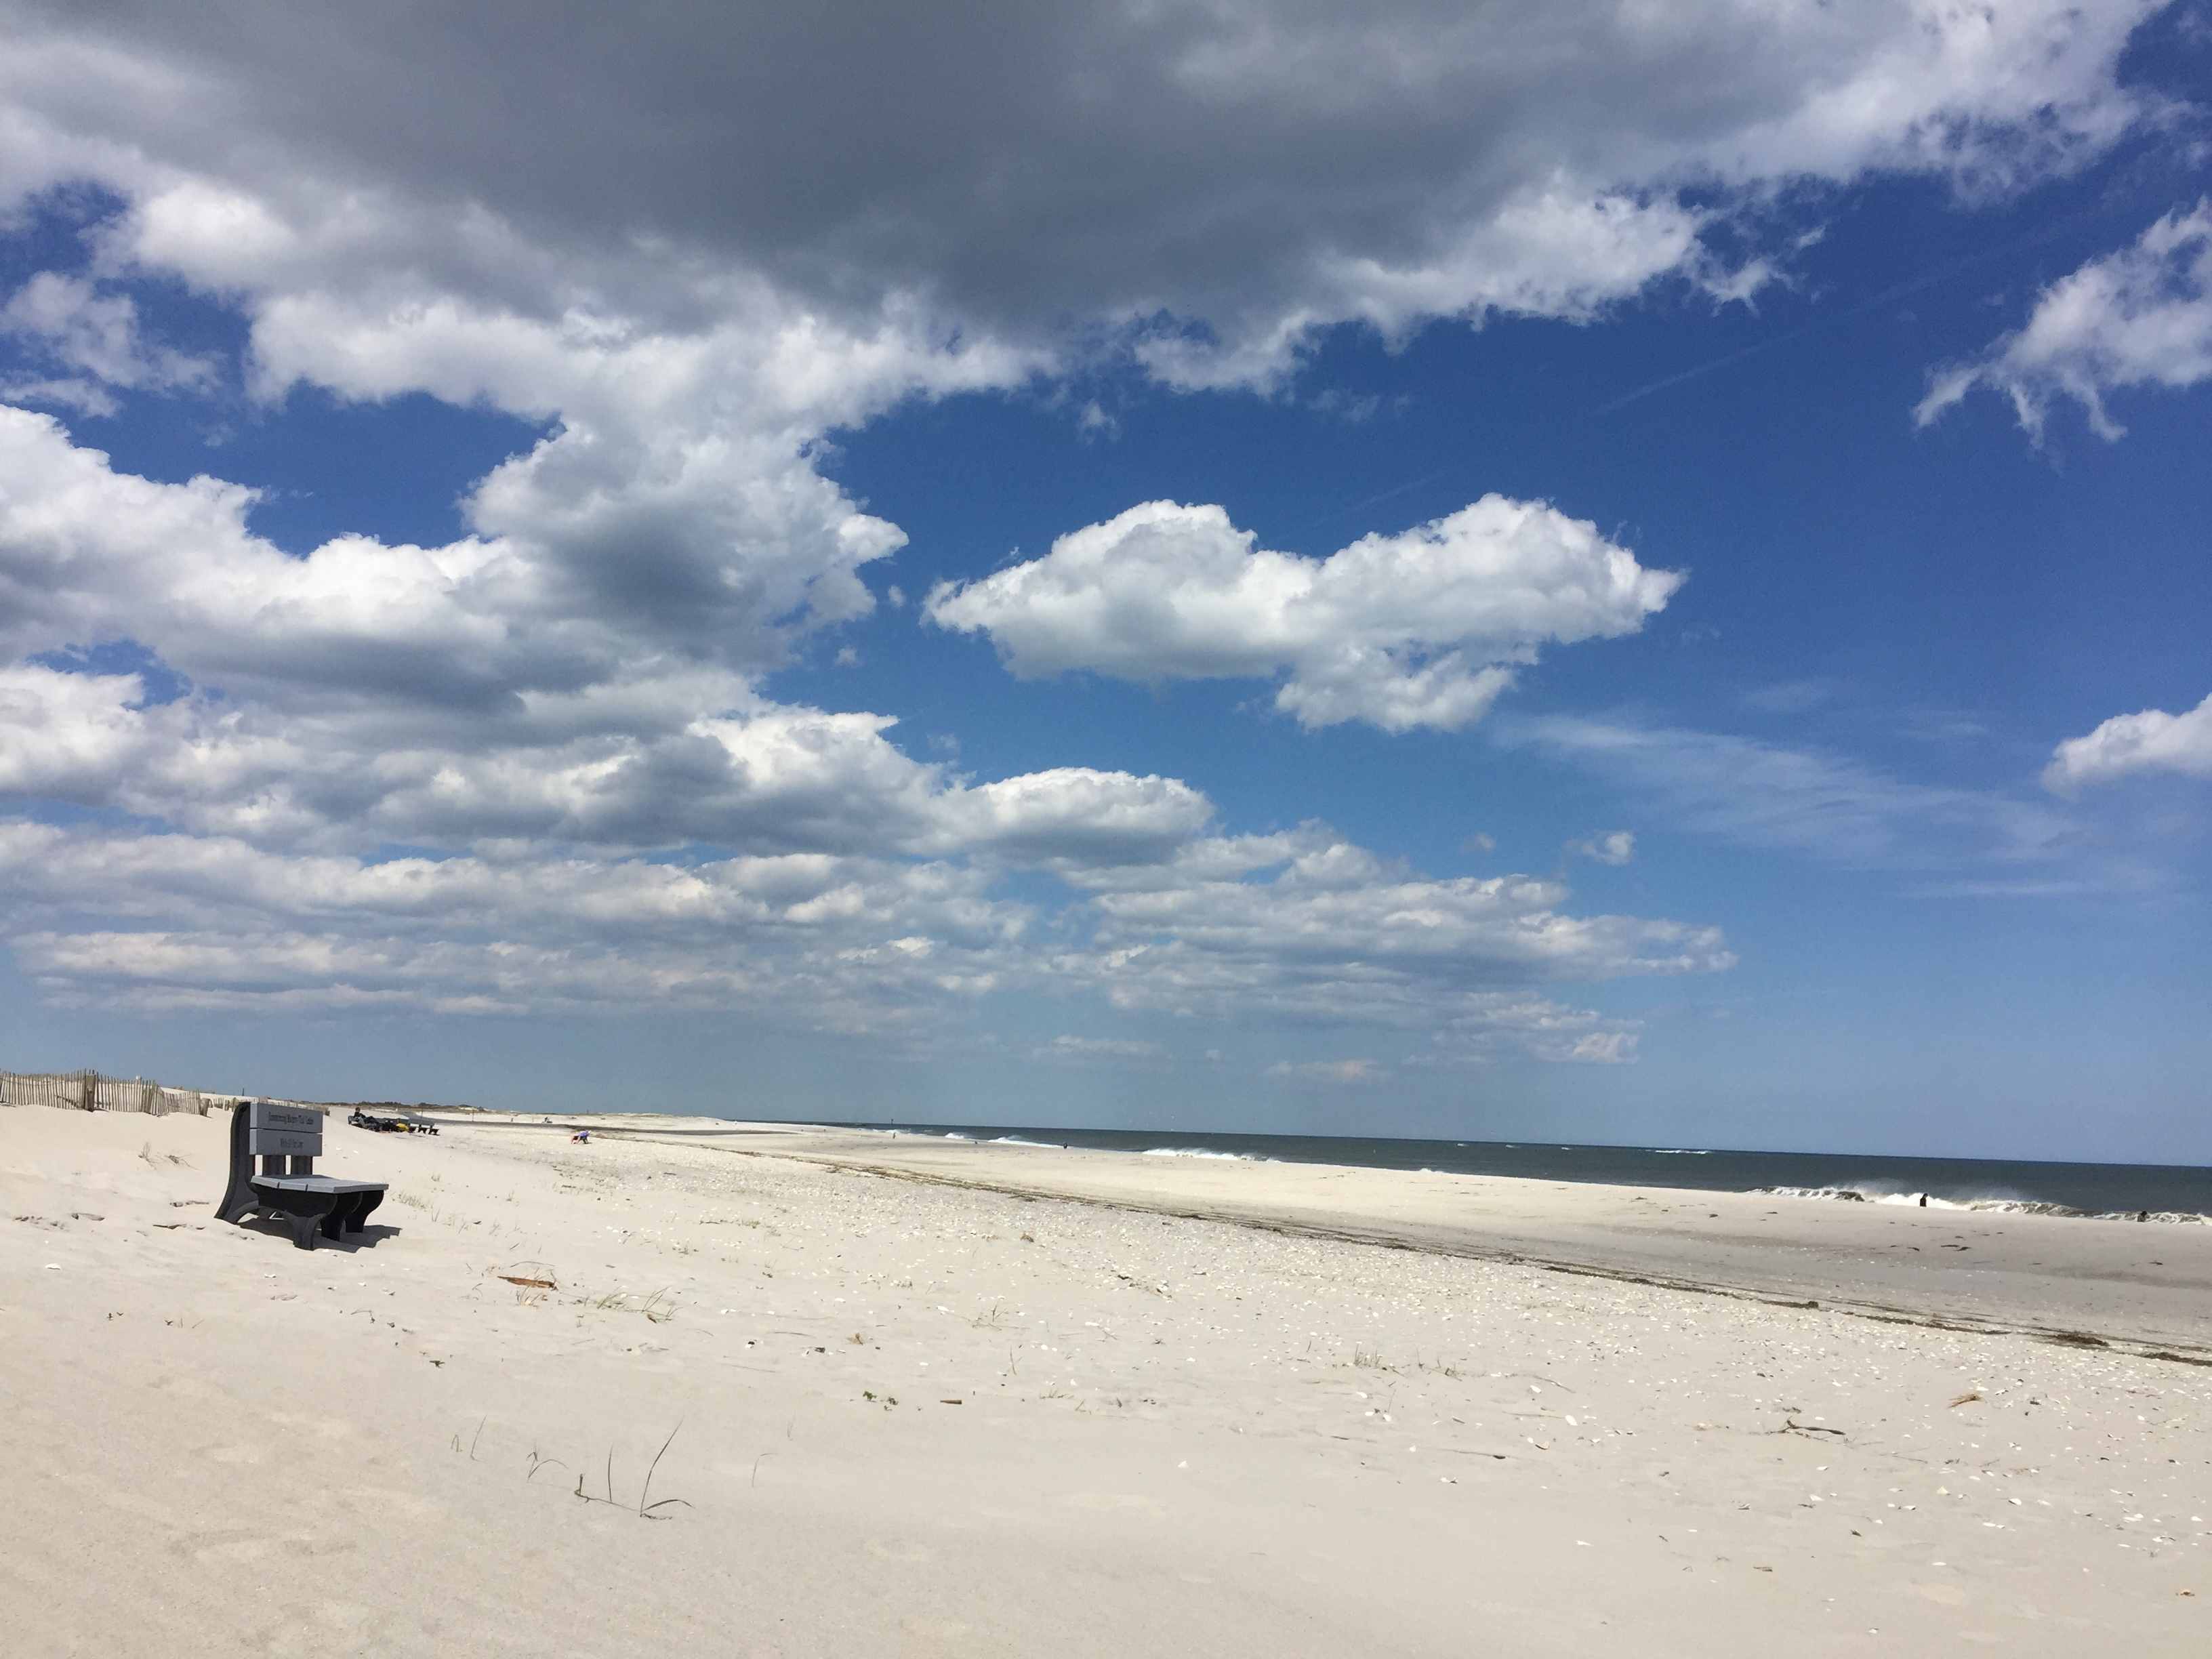 LBI Real Estate Average Days on Market